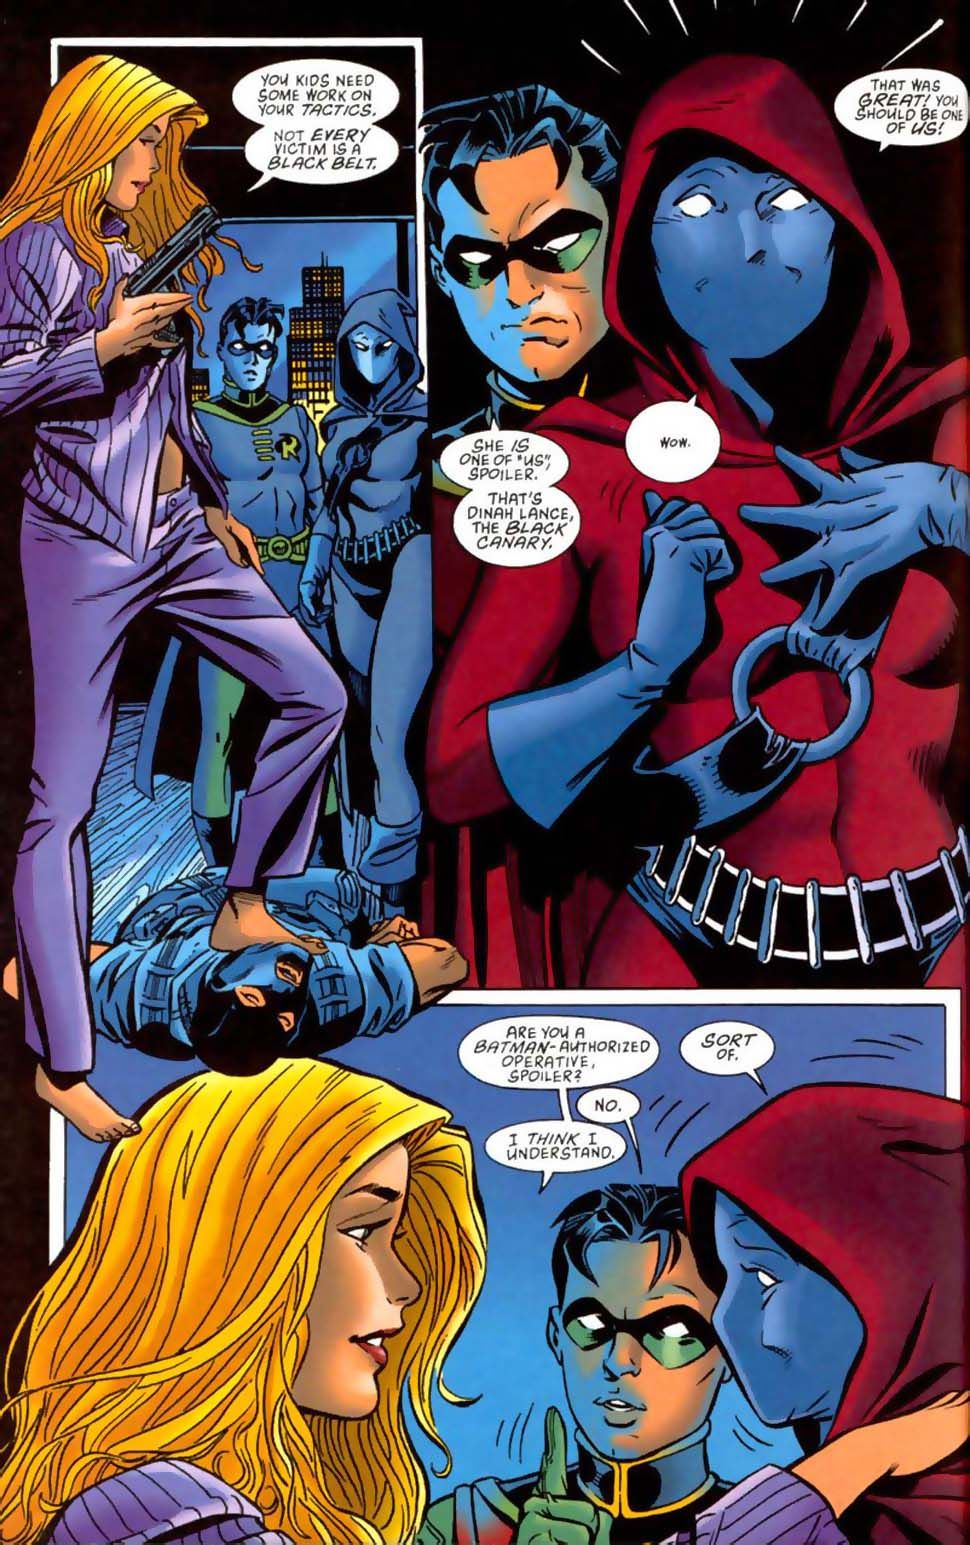 stephanie brown and tim drake fanfic - Google Search | Tim ...